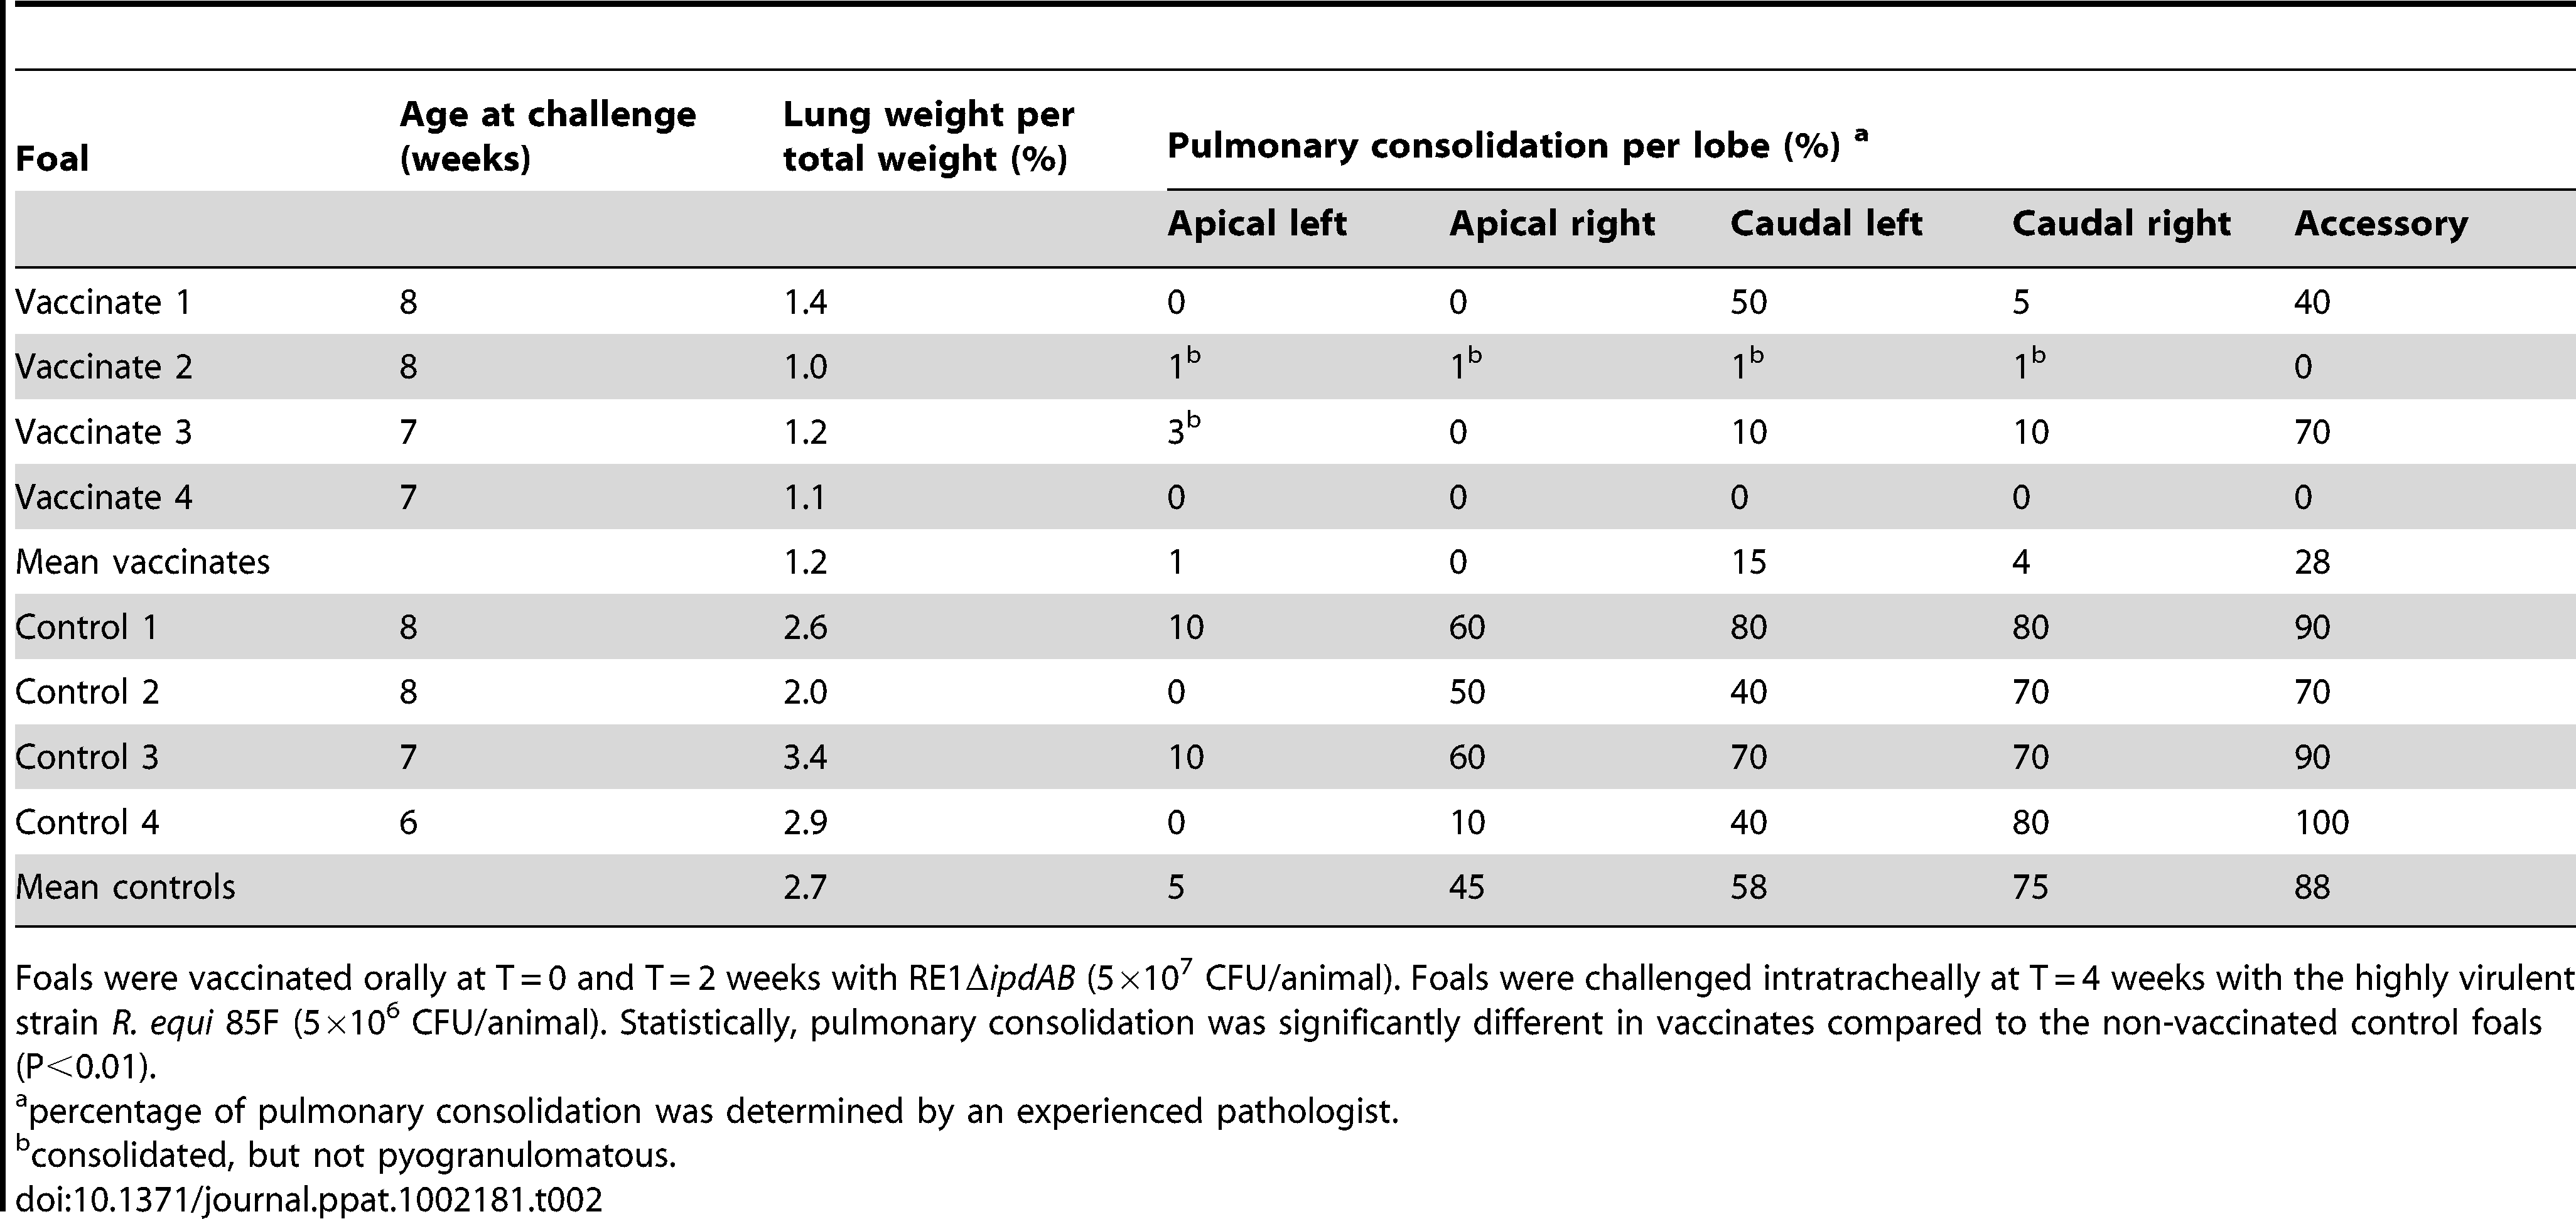 Lung weights and percentage pulmonary consolidation per lobe of vaccinated and unvaccinated (control) 2 to 4-week-old foals (n = 4).